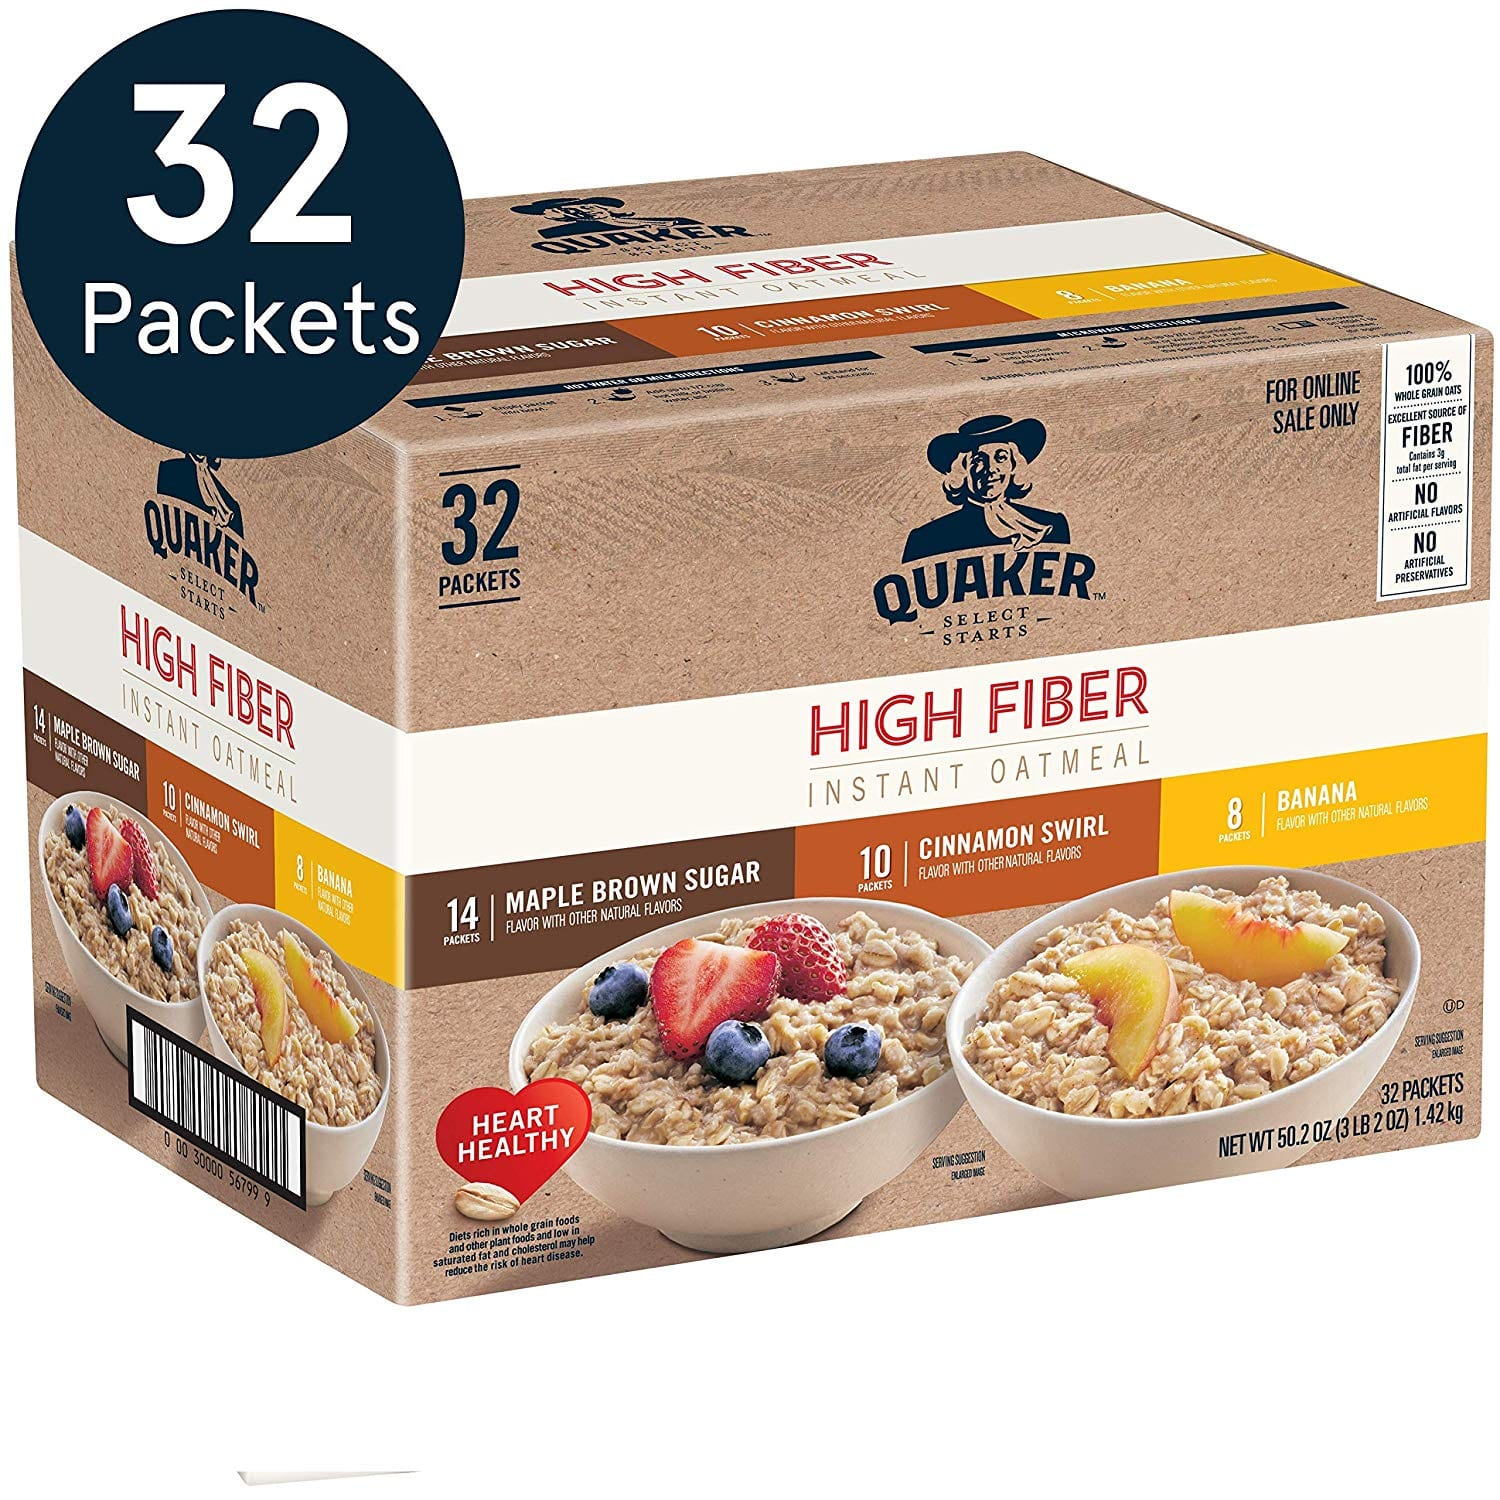 32-Count Quaker High Fiber Instant Oatmeal (3-Flavor Variety Pack) $11.90 w/ S&S + Free S/H